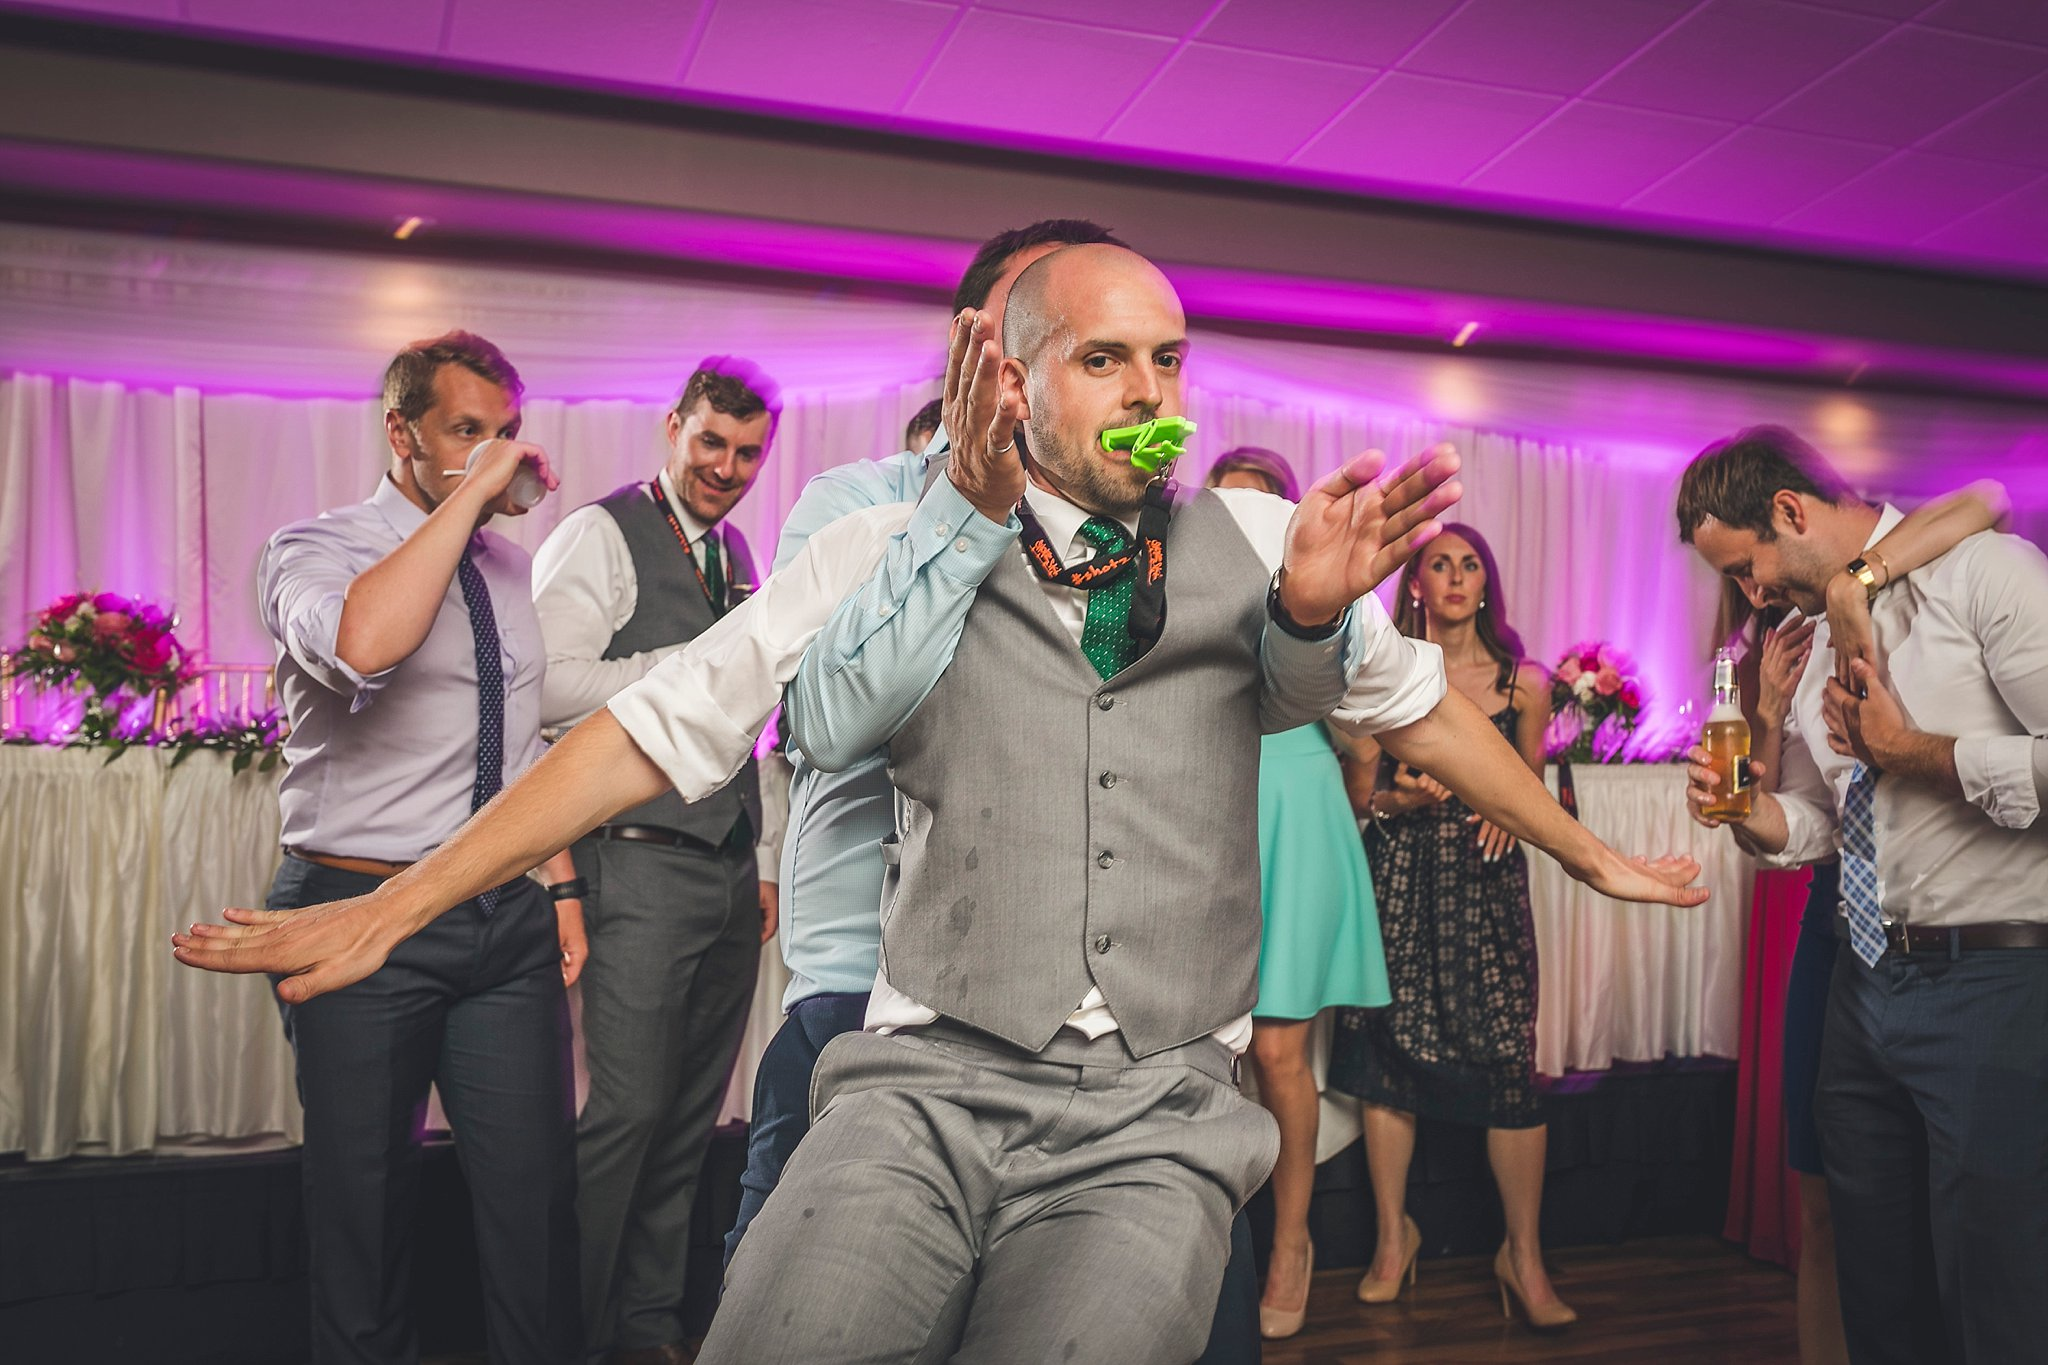 Dance floor photographs at a Newfoundland Wedding held at Glendenning in St. John's